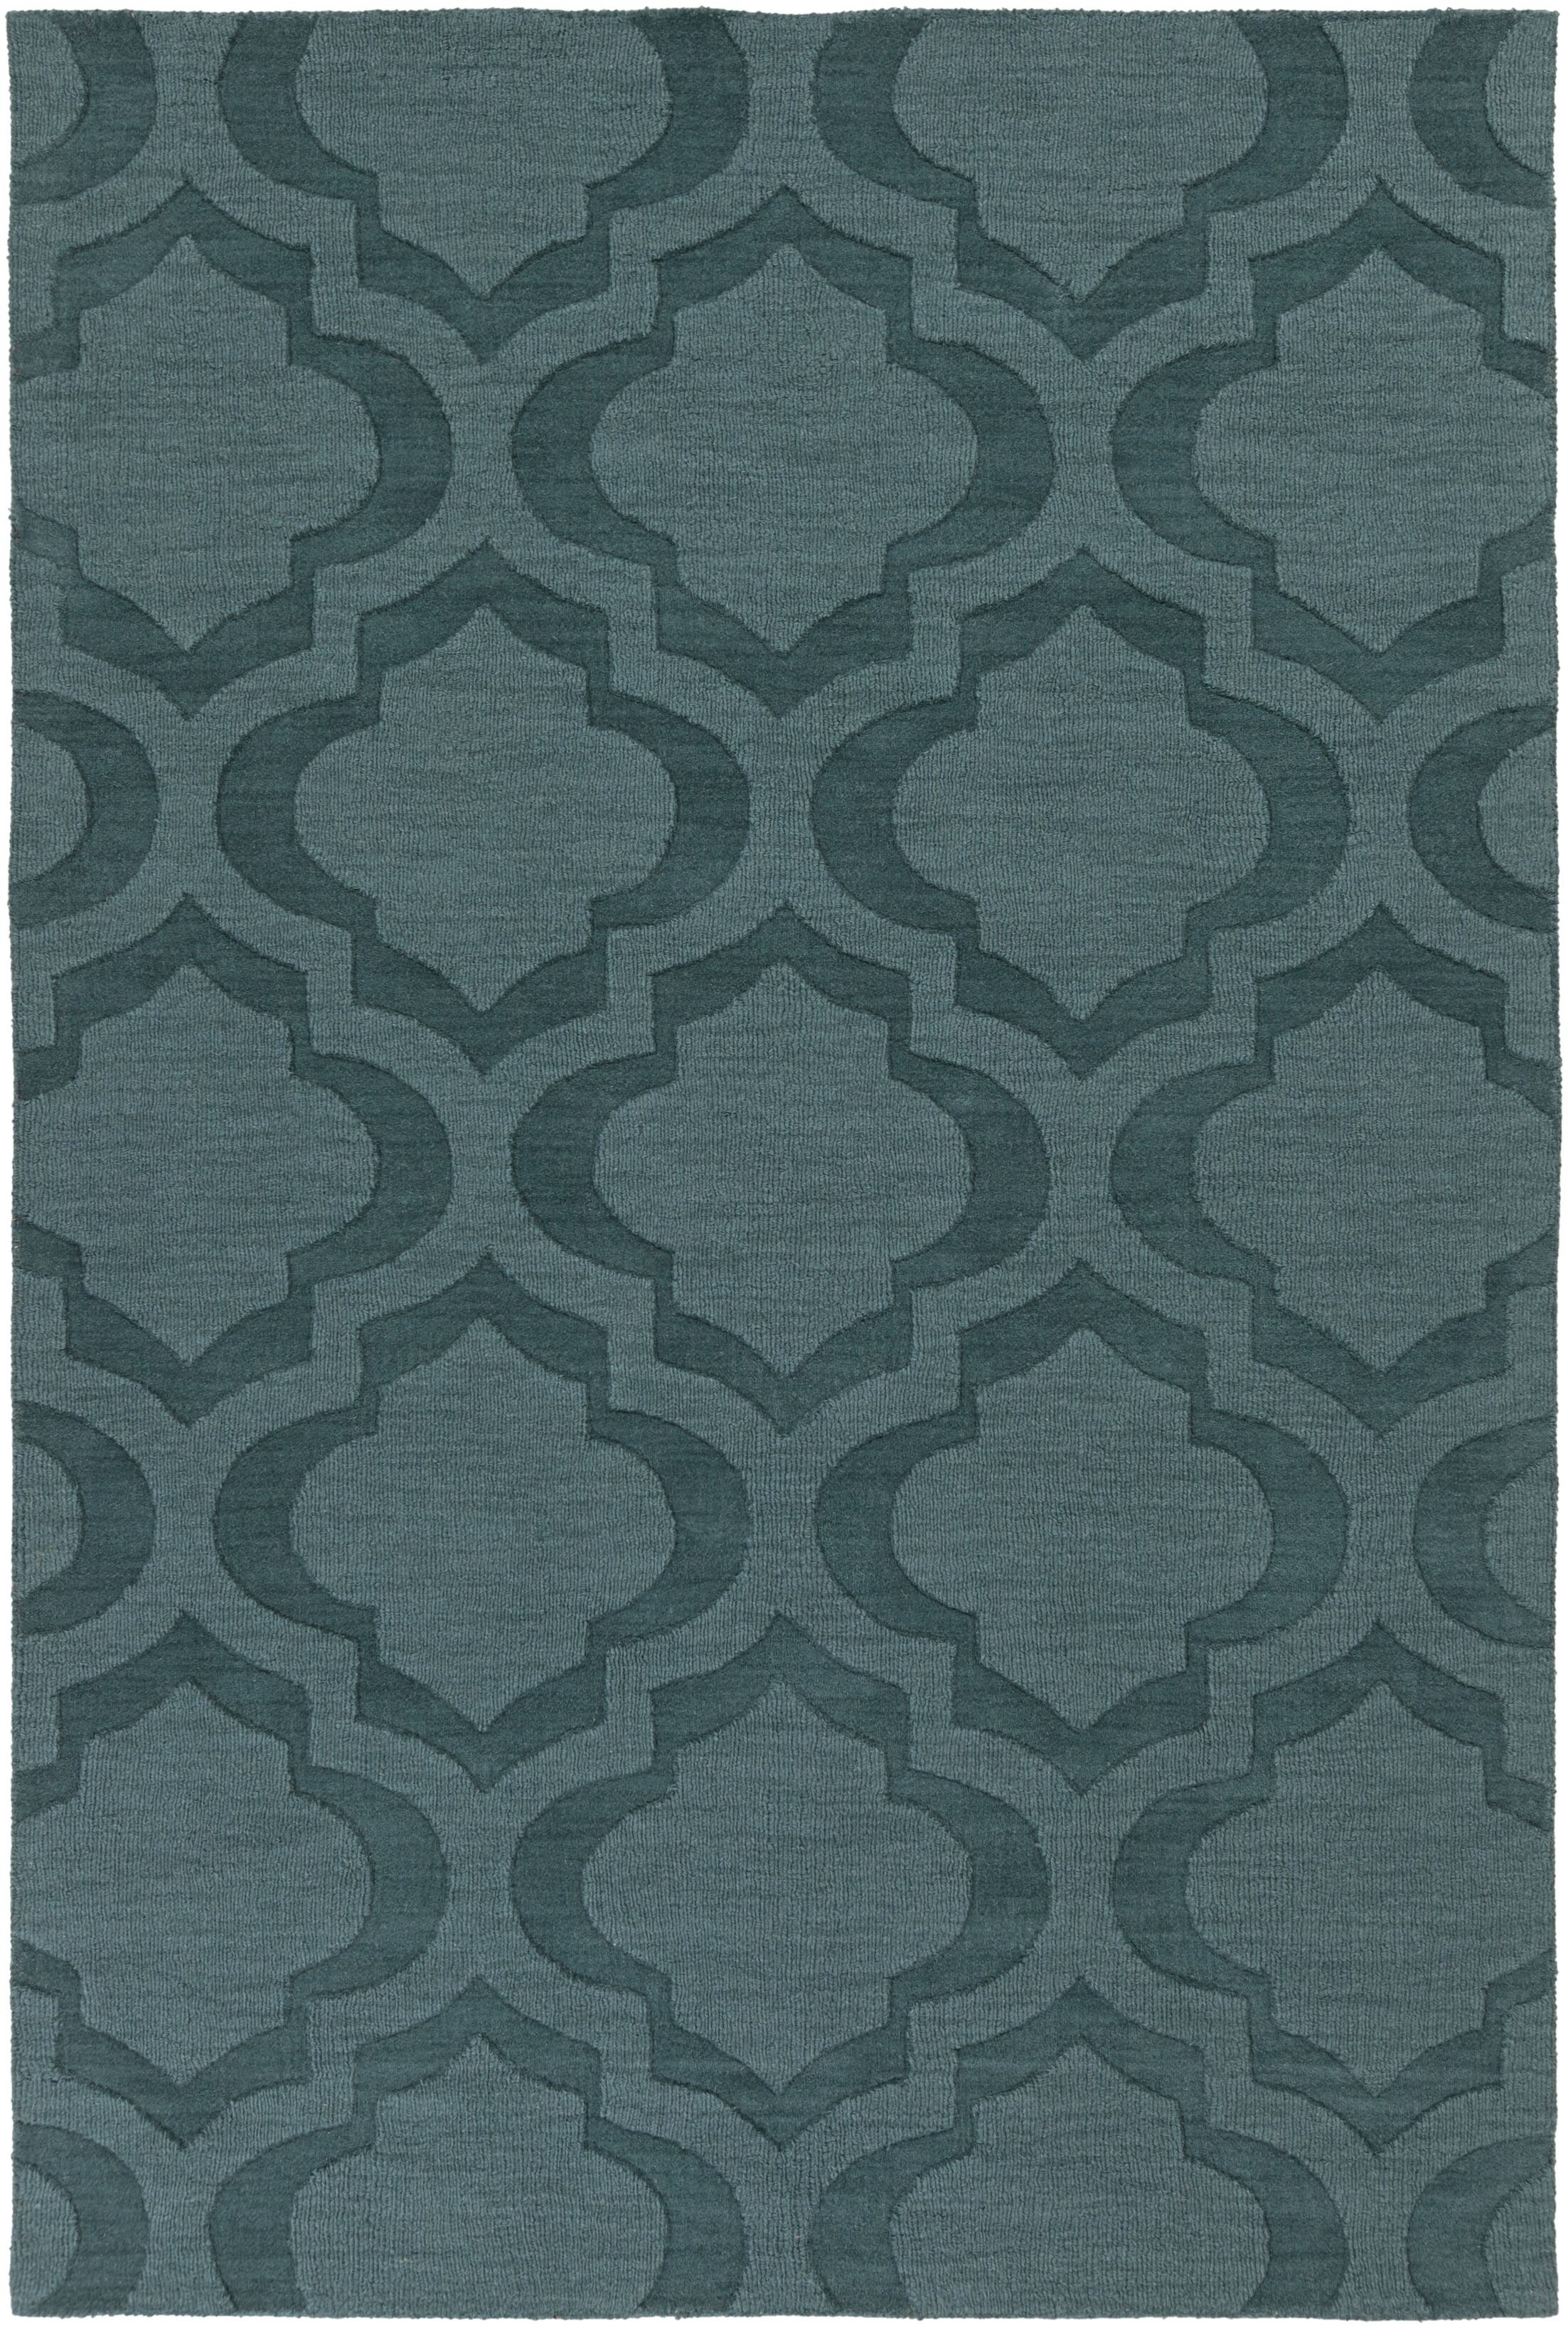 Castro Hand Woven Wool Teal Area Rug Rug Size: Rectangle 8' x 10'